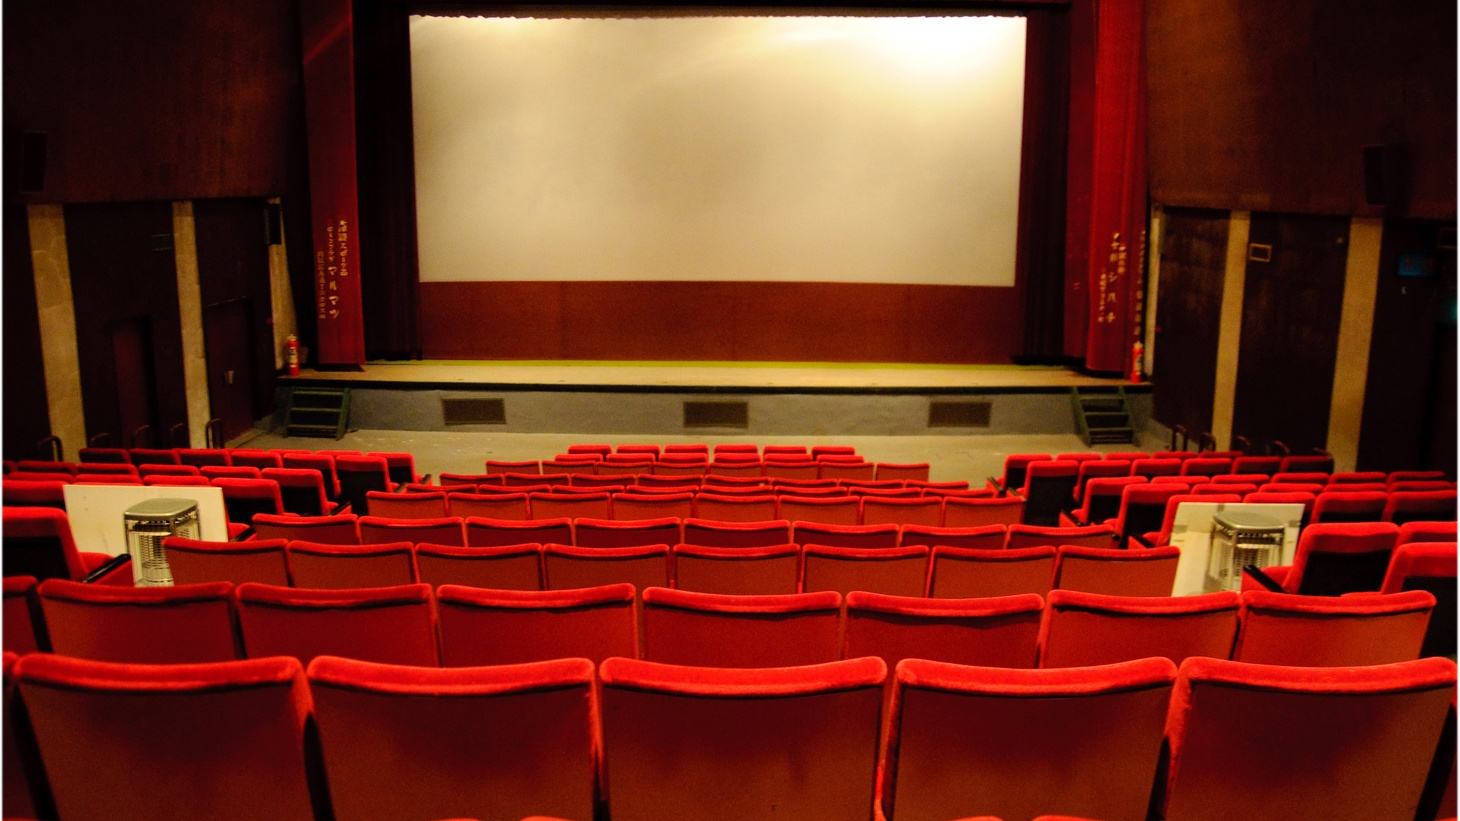 Press Play goes to the movies! Today on the show, we revisit some of our favorite film-related interviews from 2014.